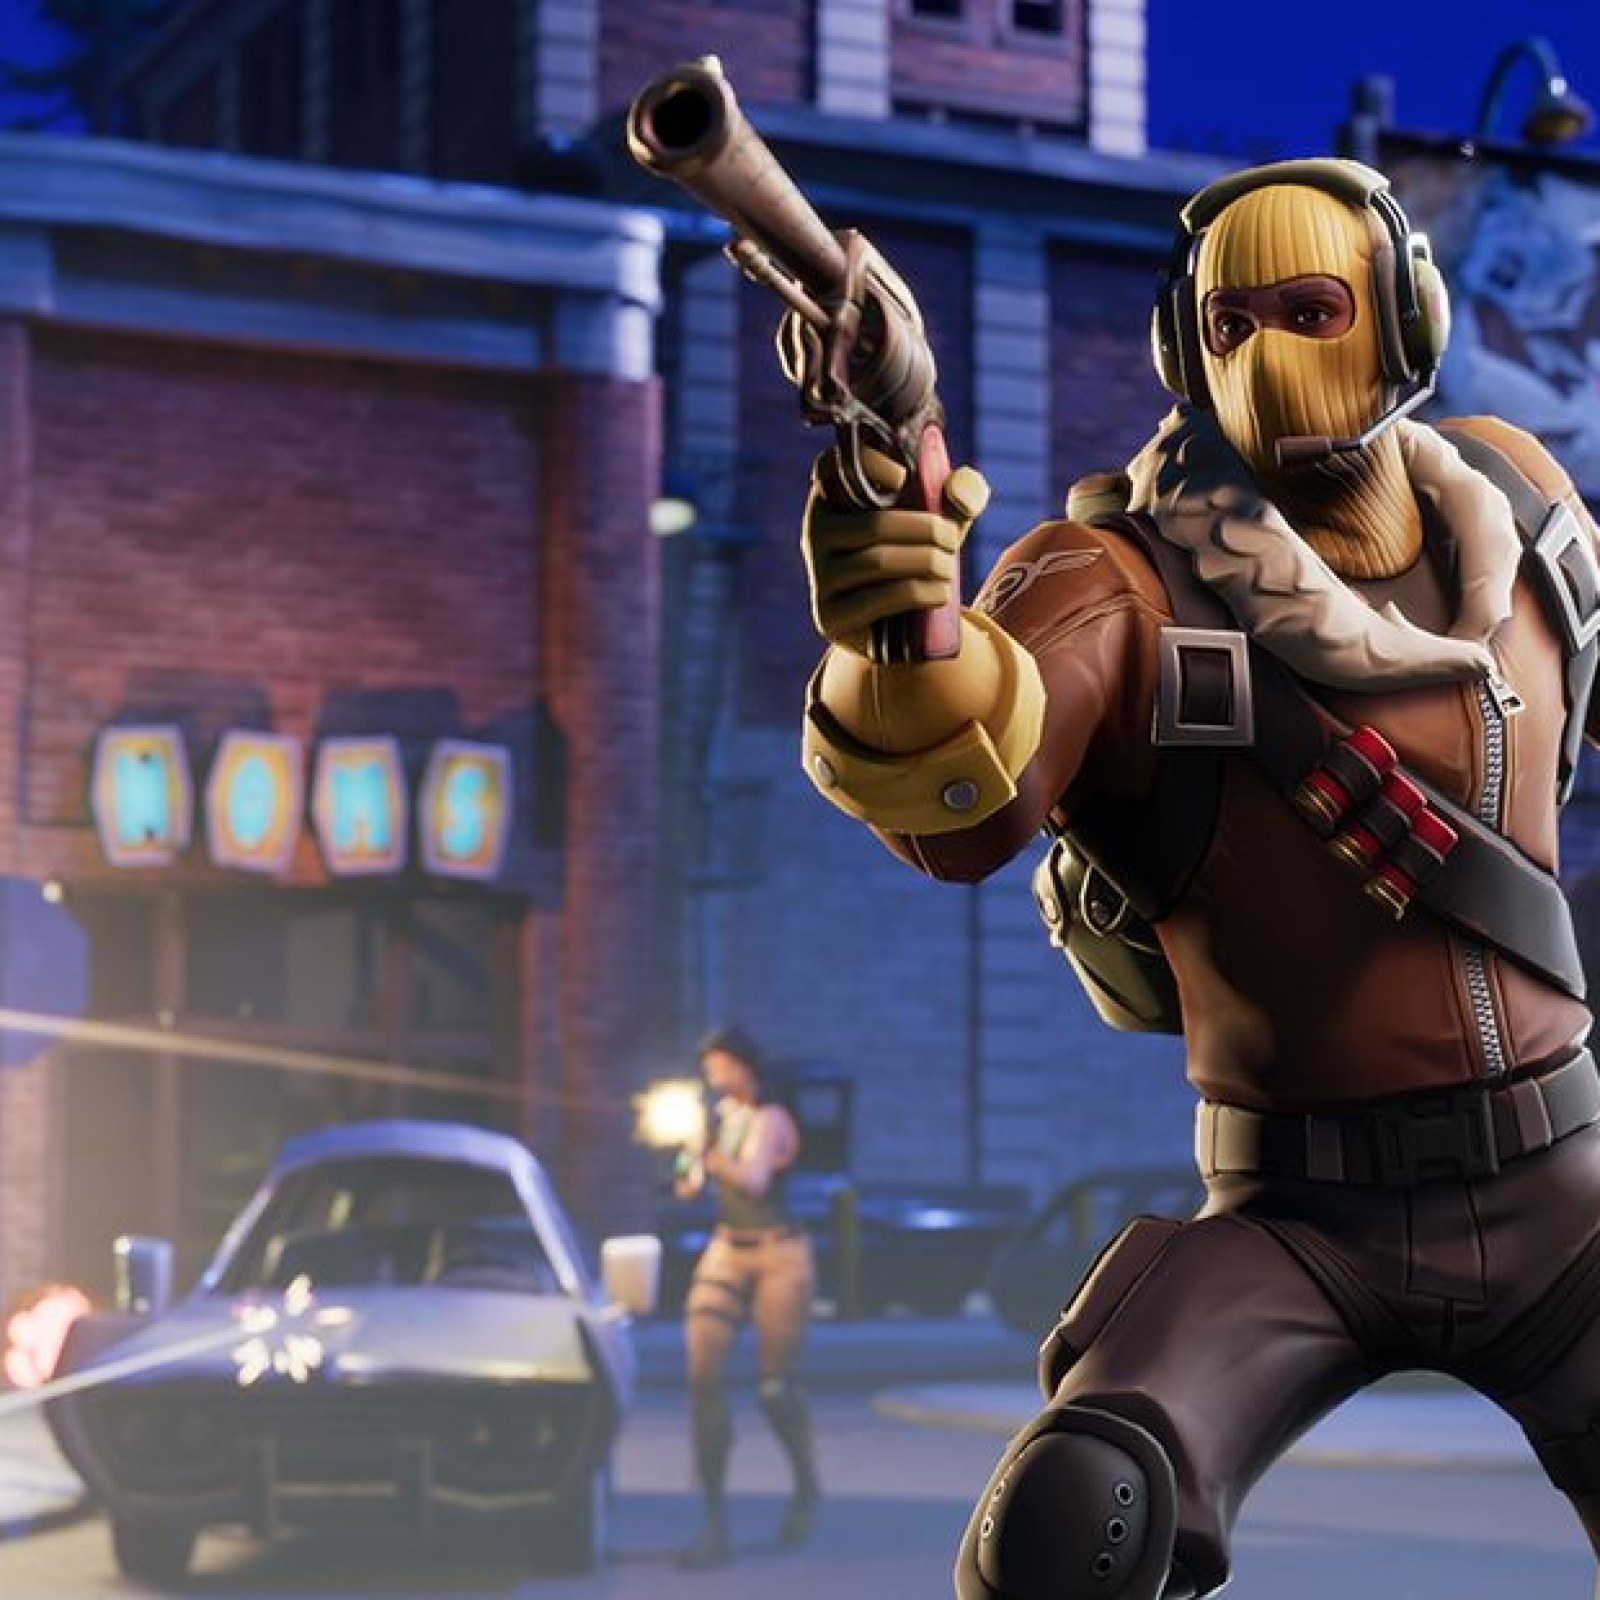 Fortnite' on Switch to Get Headset Voice Chat, Touch Controls Soon